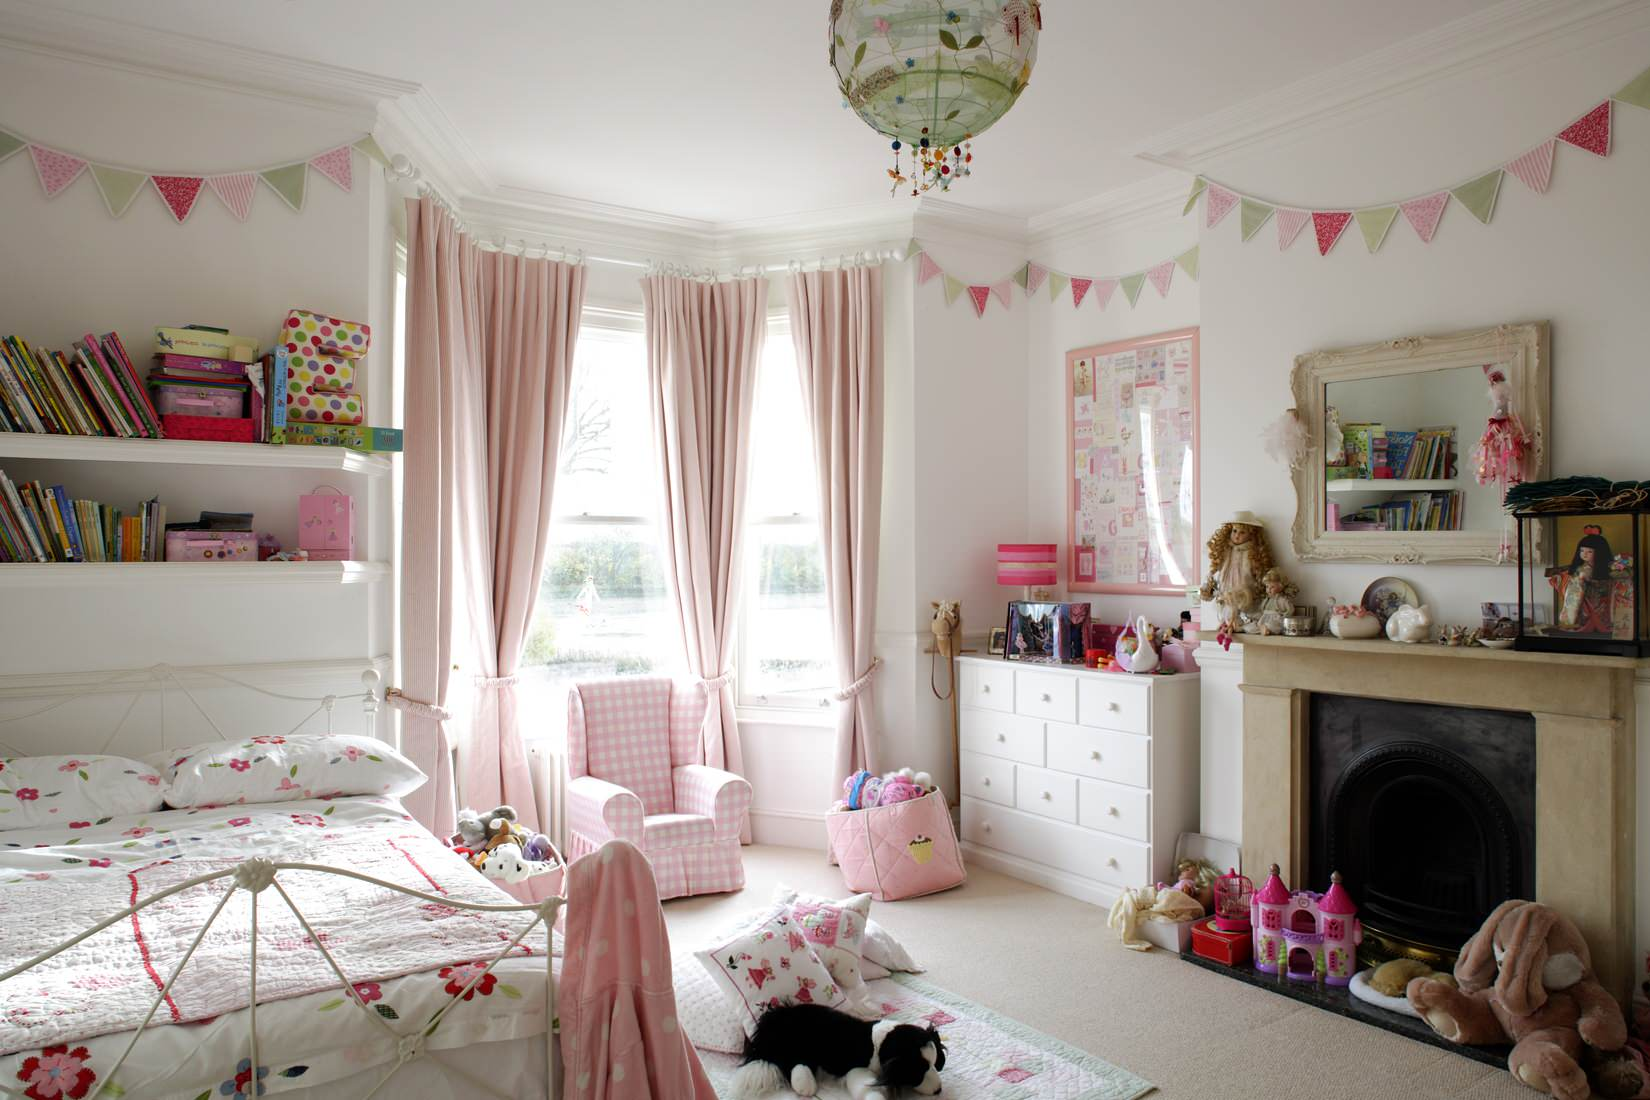 18 Magical Shabby-Chic Kids' Room Designs That Will Enchant You